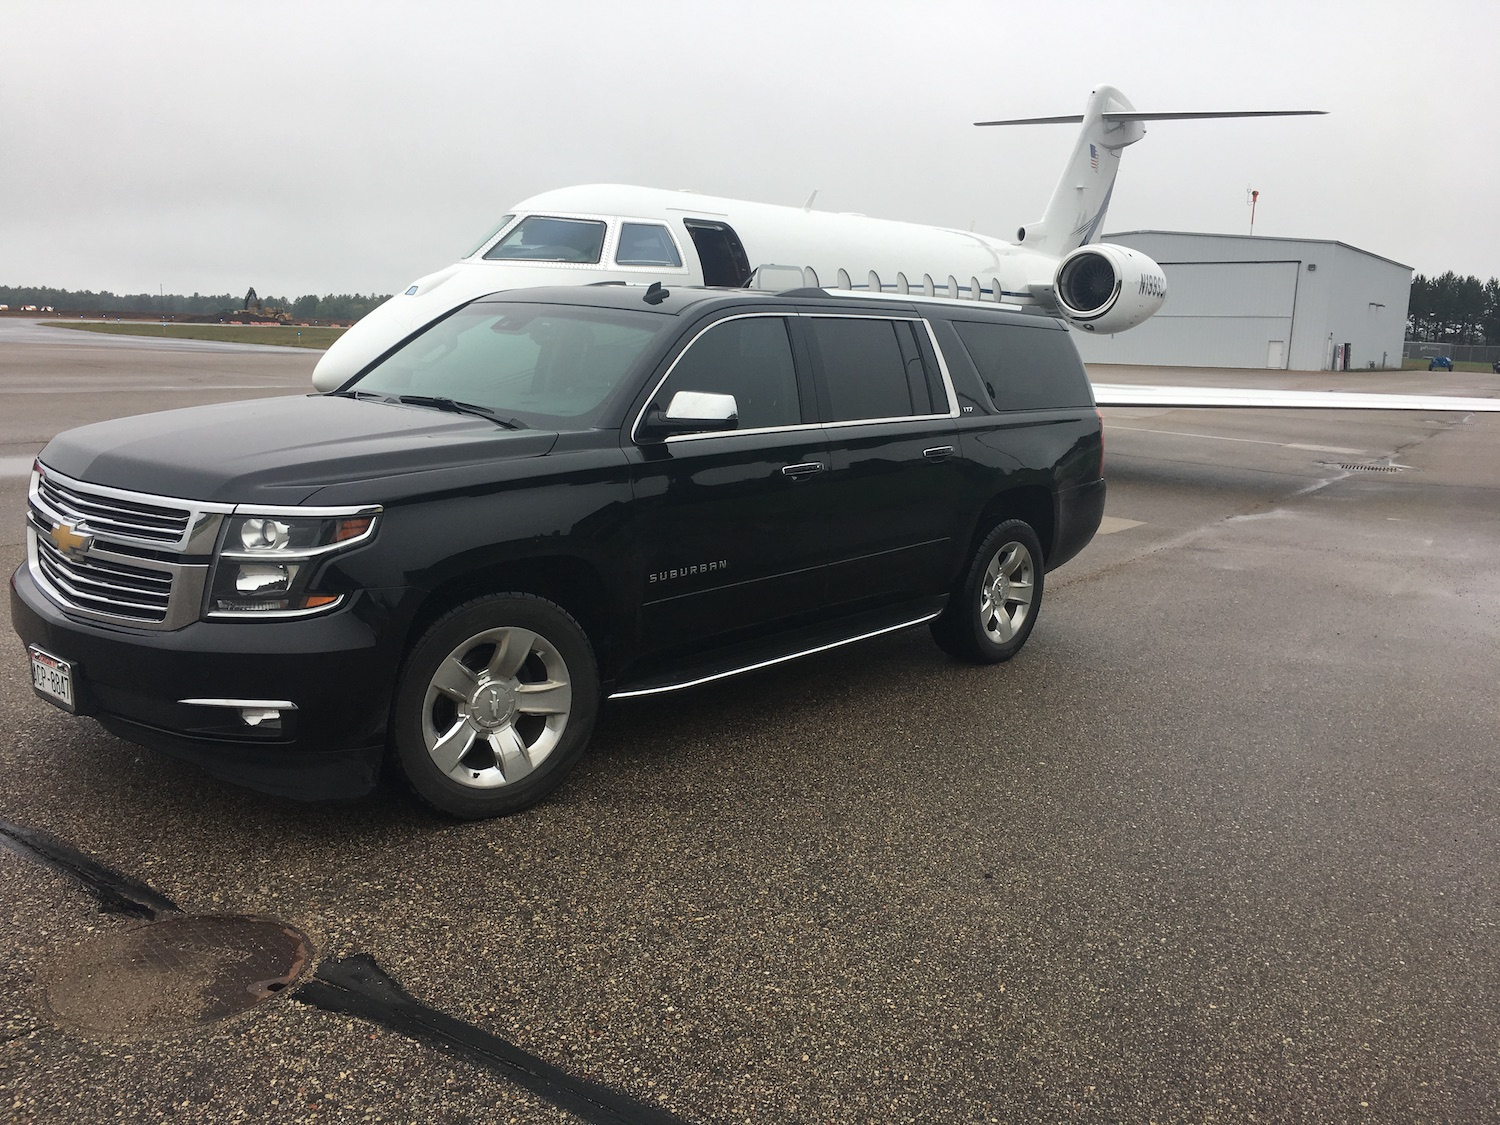 Black Suburban limo service for airport shuttle